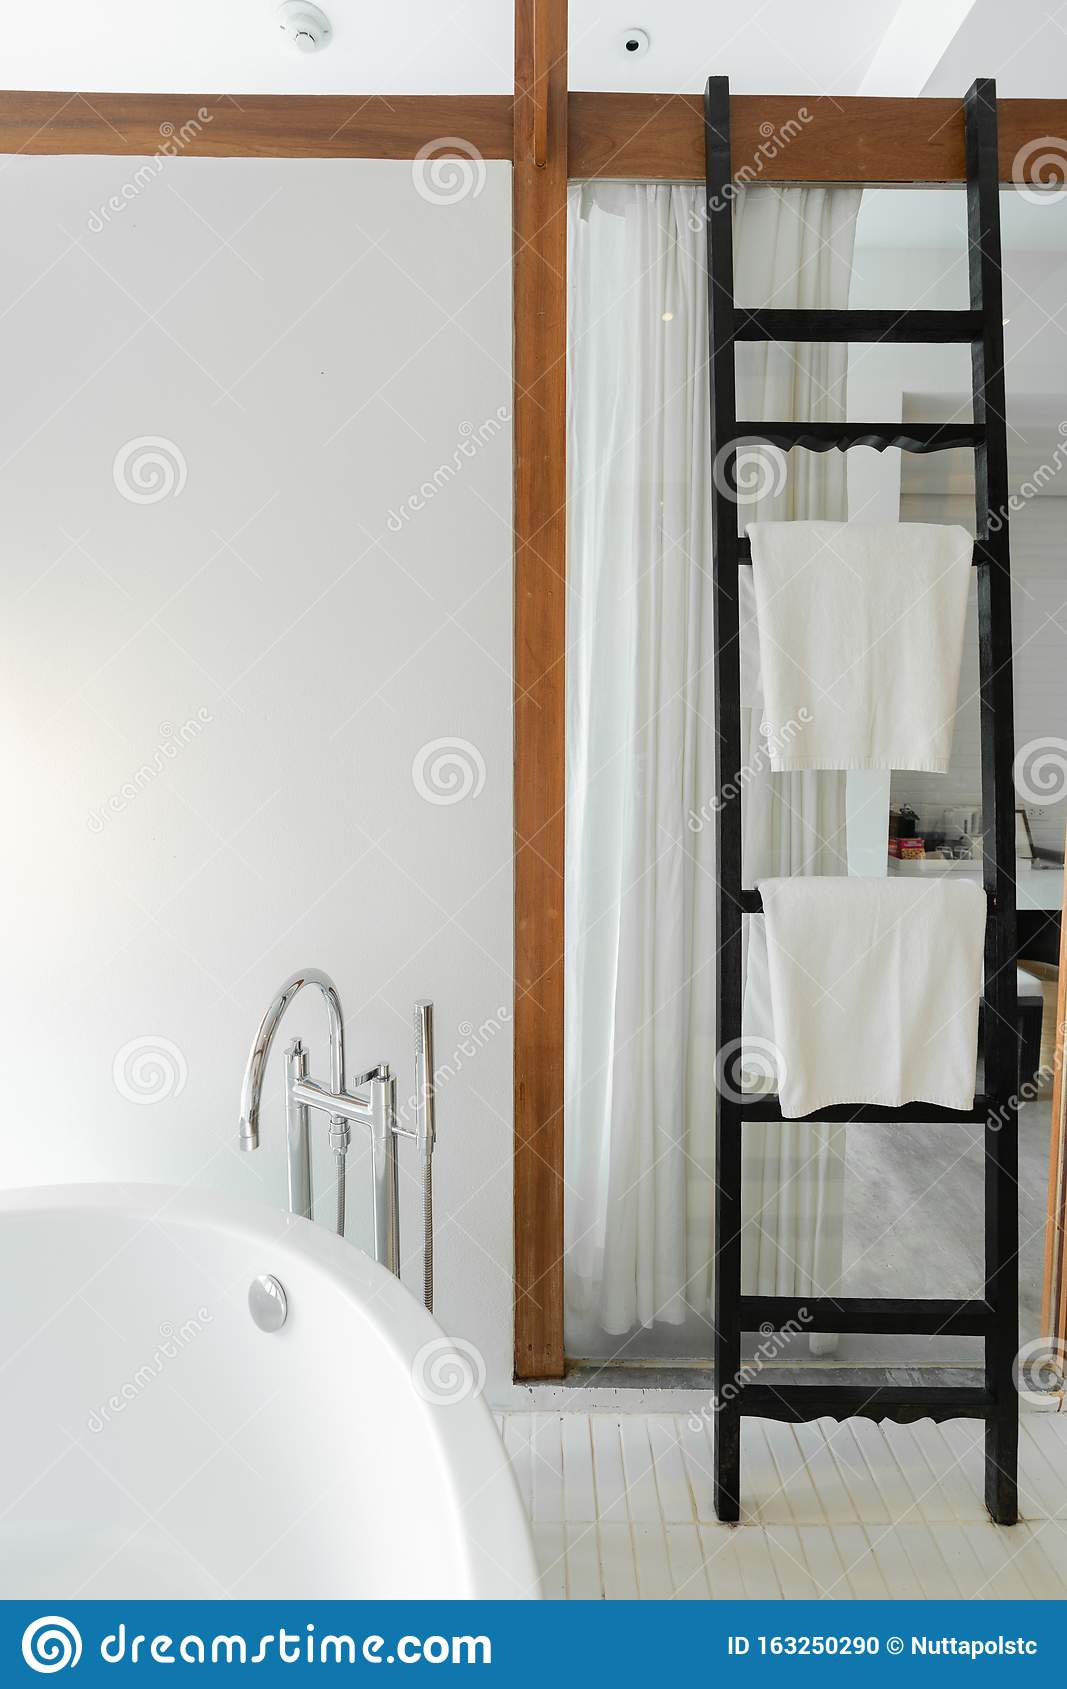 Modern Bathroom In Modern Style With Empty White Painted Wall And Black Wooden Ladder Towel Rack In Tropical Resort Copyspace Stock Photo Image Of Copy Chrome 163250290